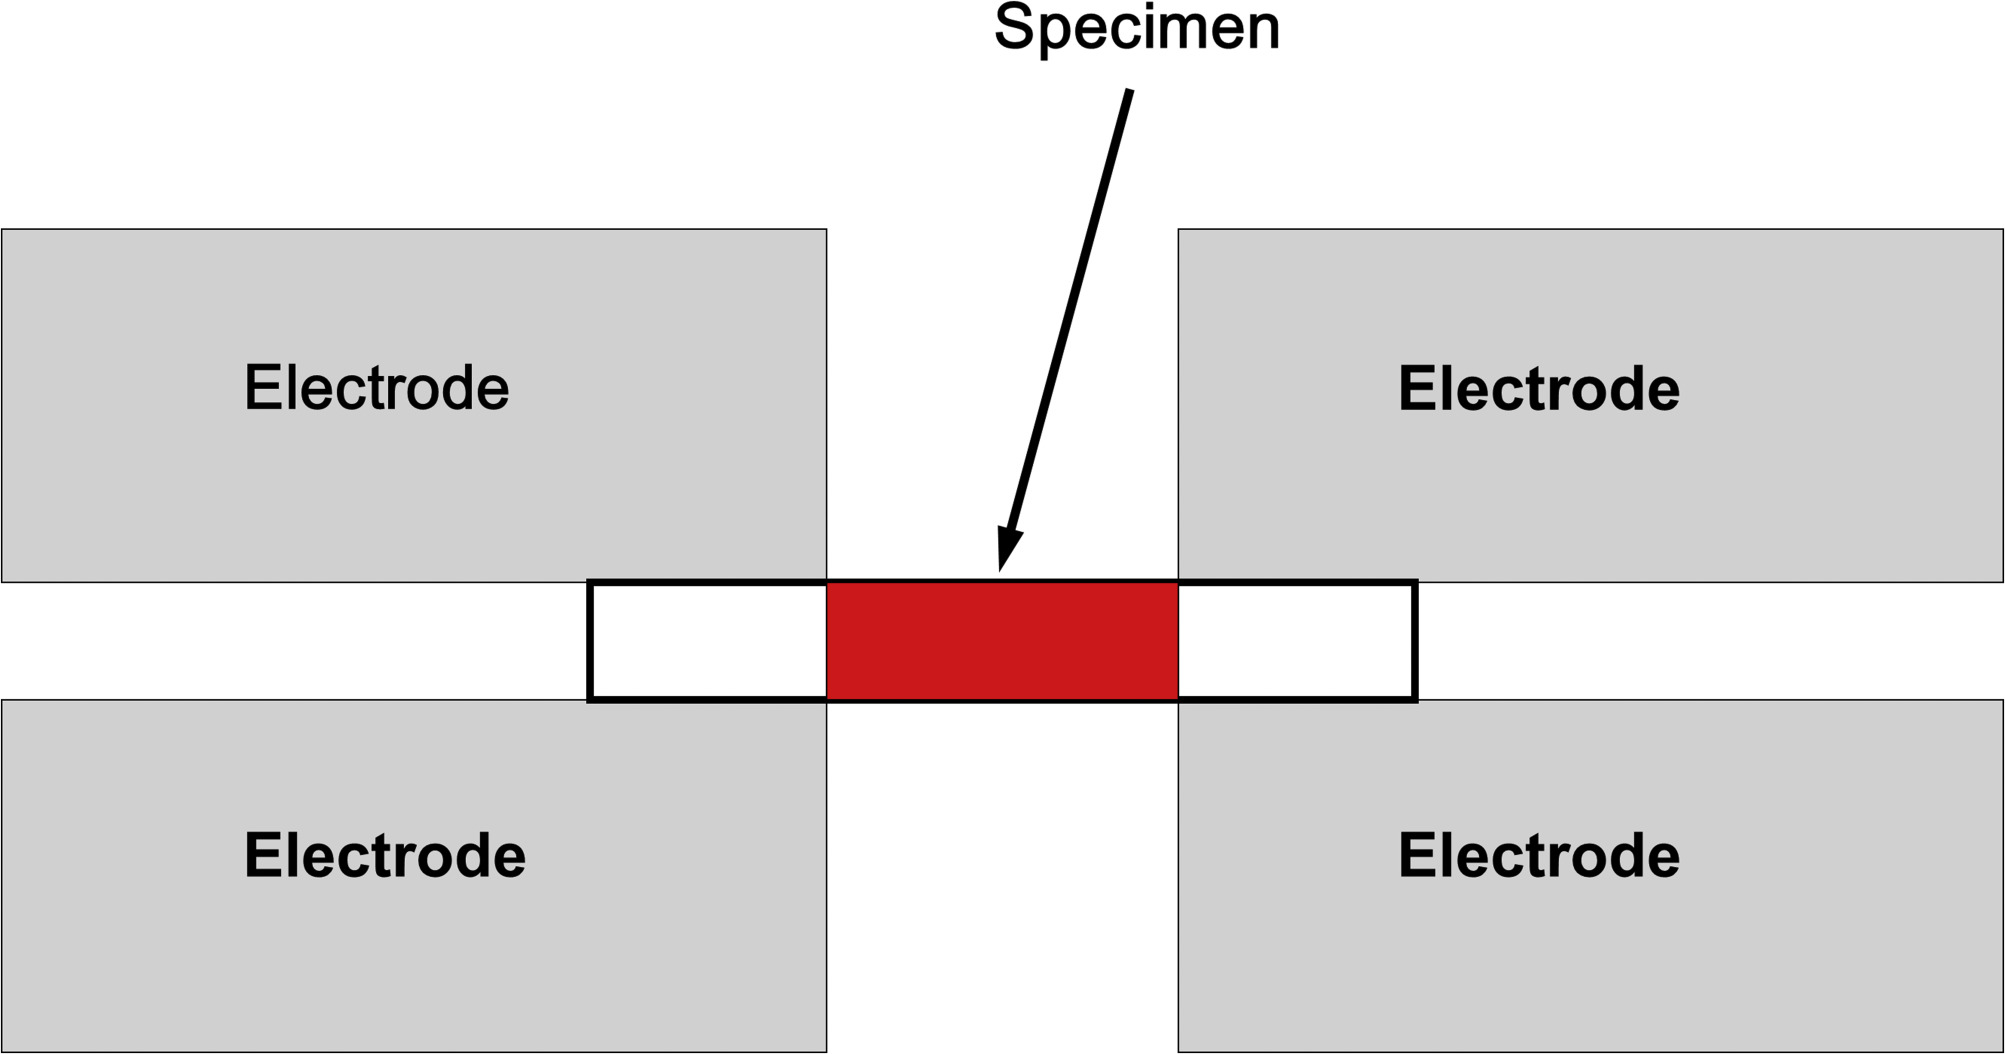 Microstructure Response Of Cryogenically Rolled Cu30zn Brass To Ecp Wiring Diagram Schematic Illustration The Specimen Tooling Configuration During Red Area Is Processed Region Sample